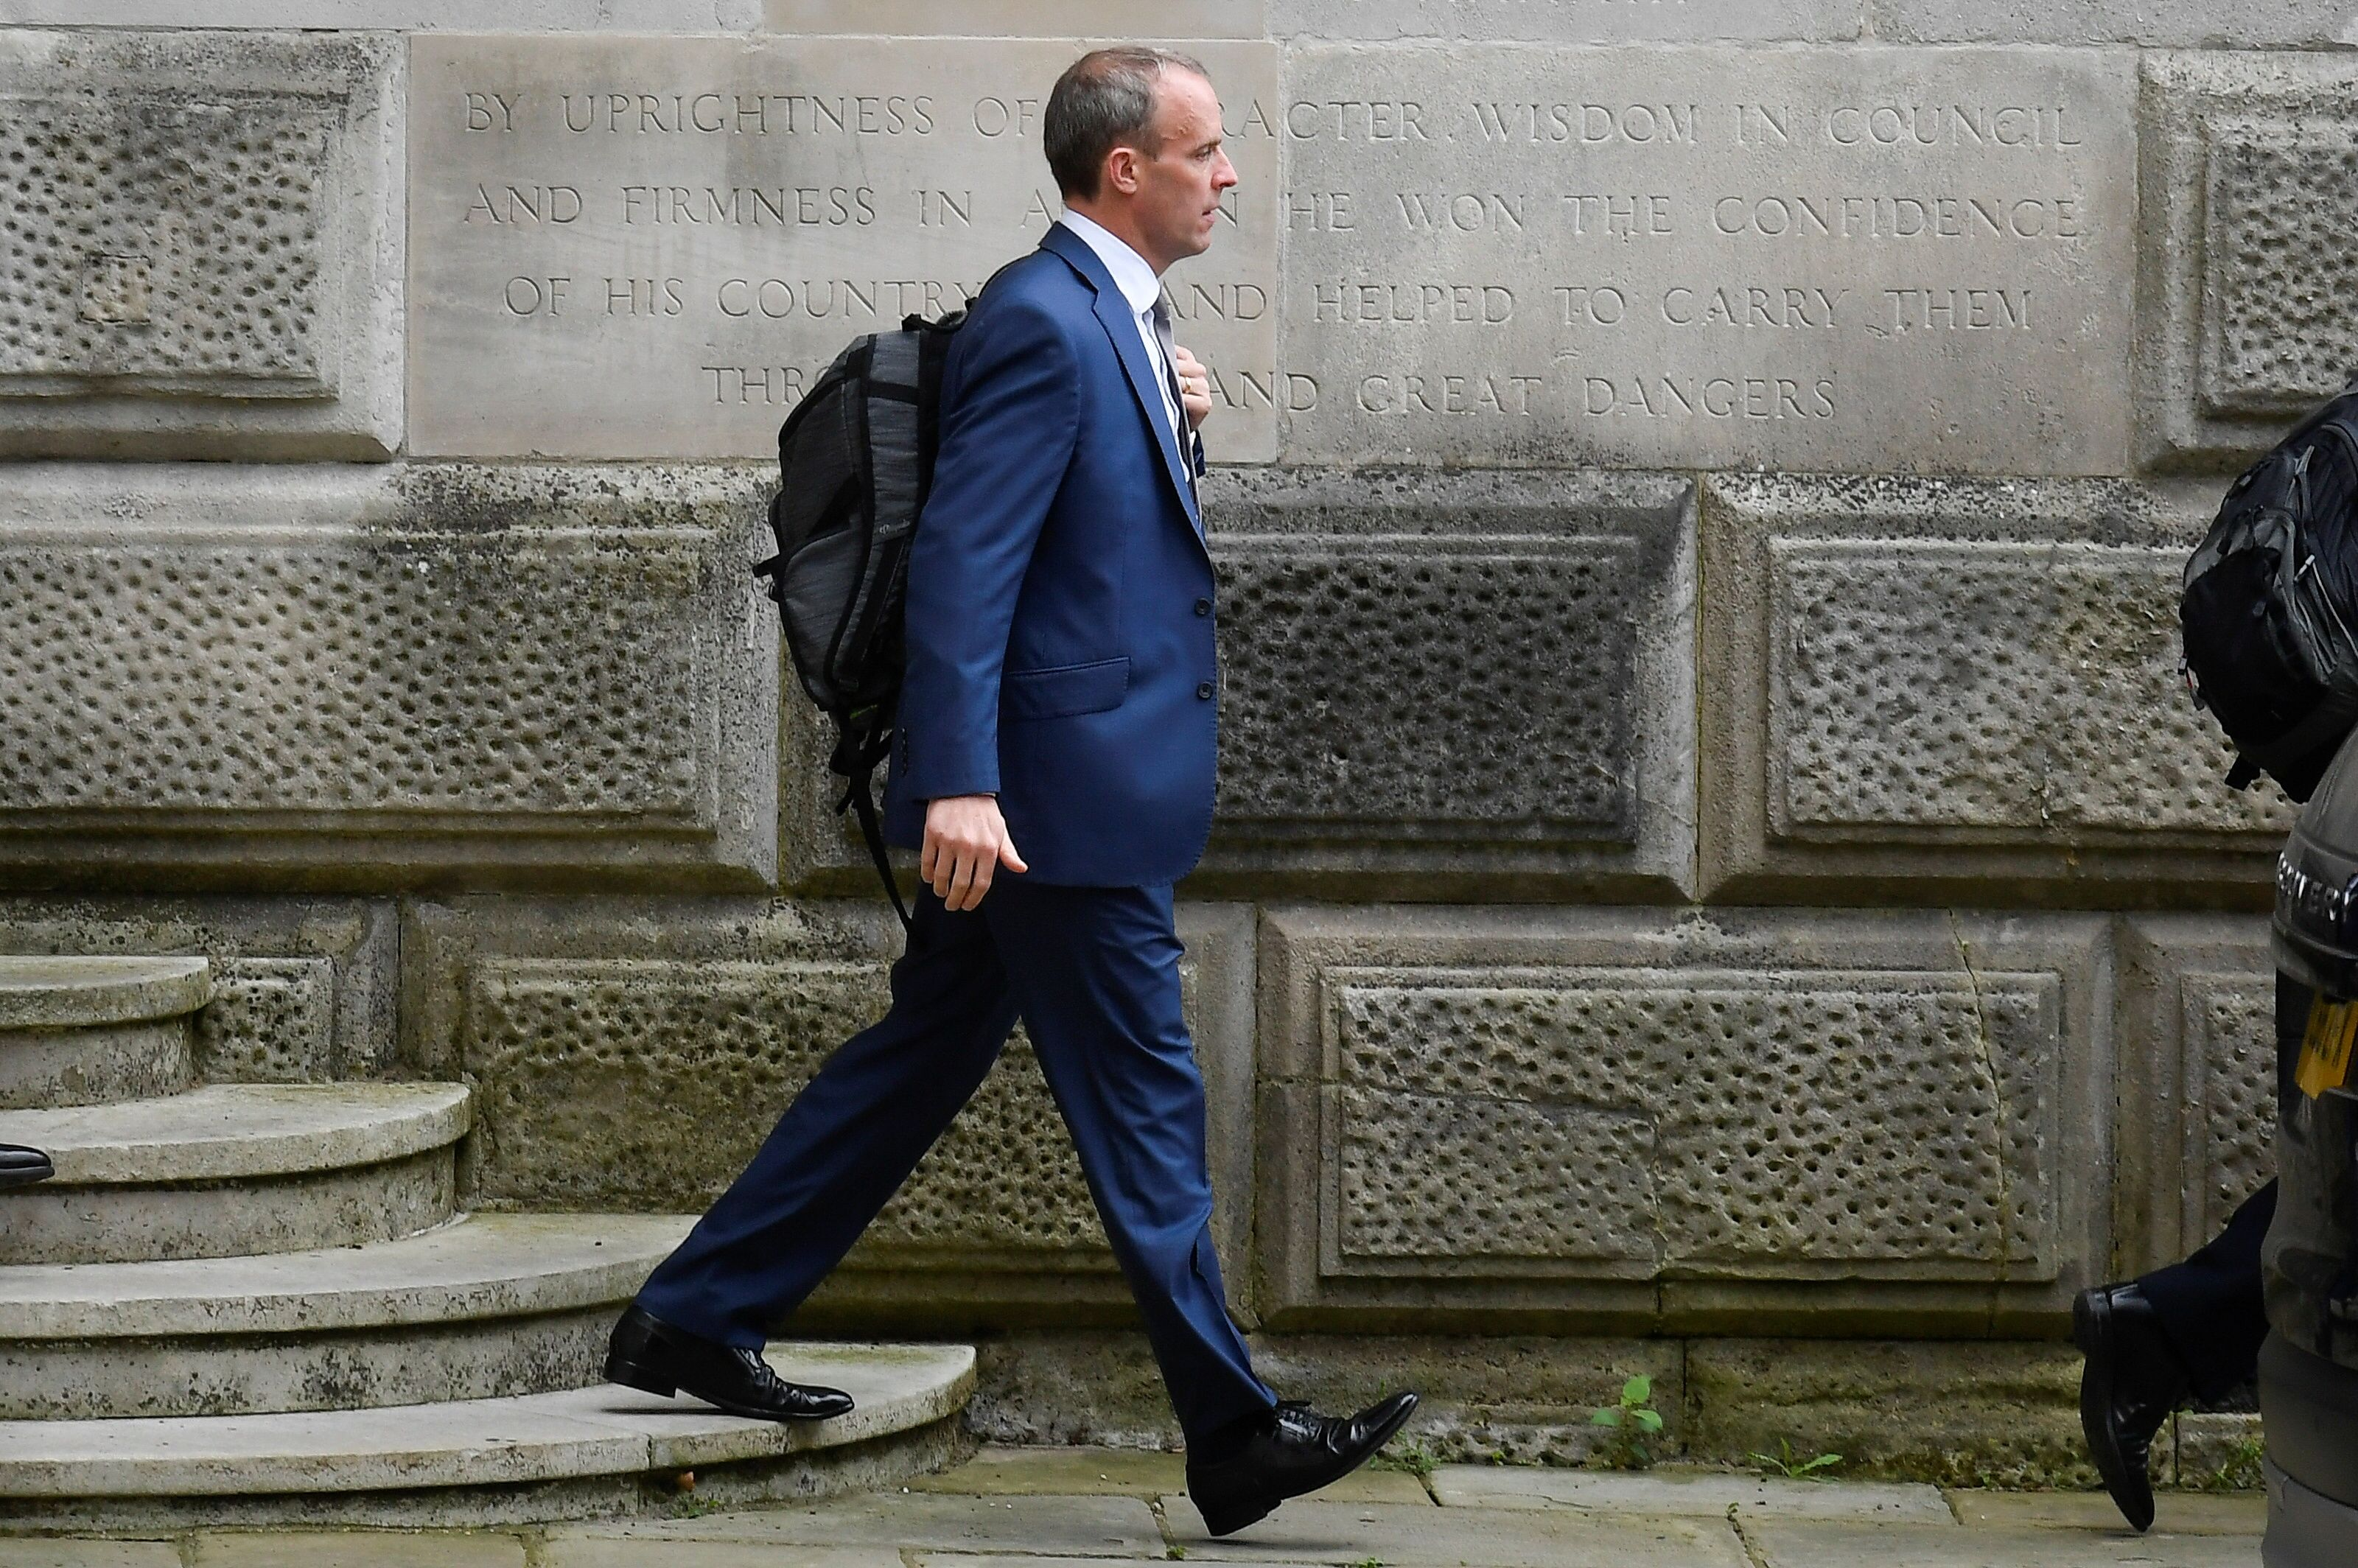 Britain's Foreign Secretary Dominic Raab walks outside the FCDO in London, Britain, September 15, 2021. REUTERS/Toby Melville